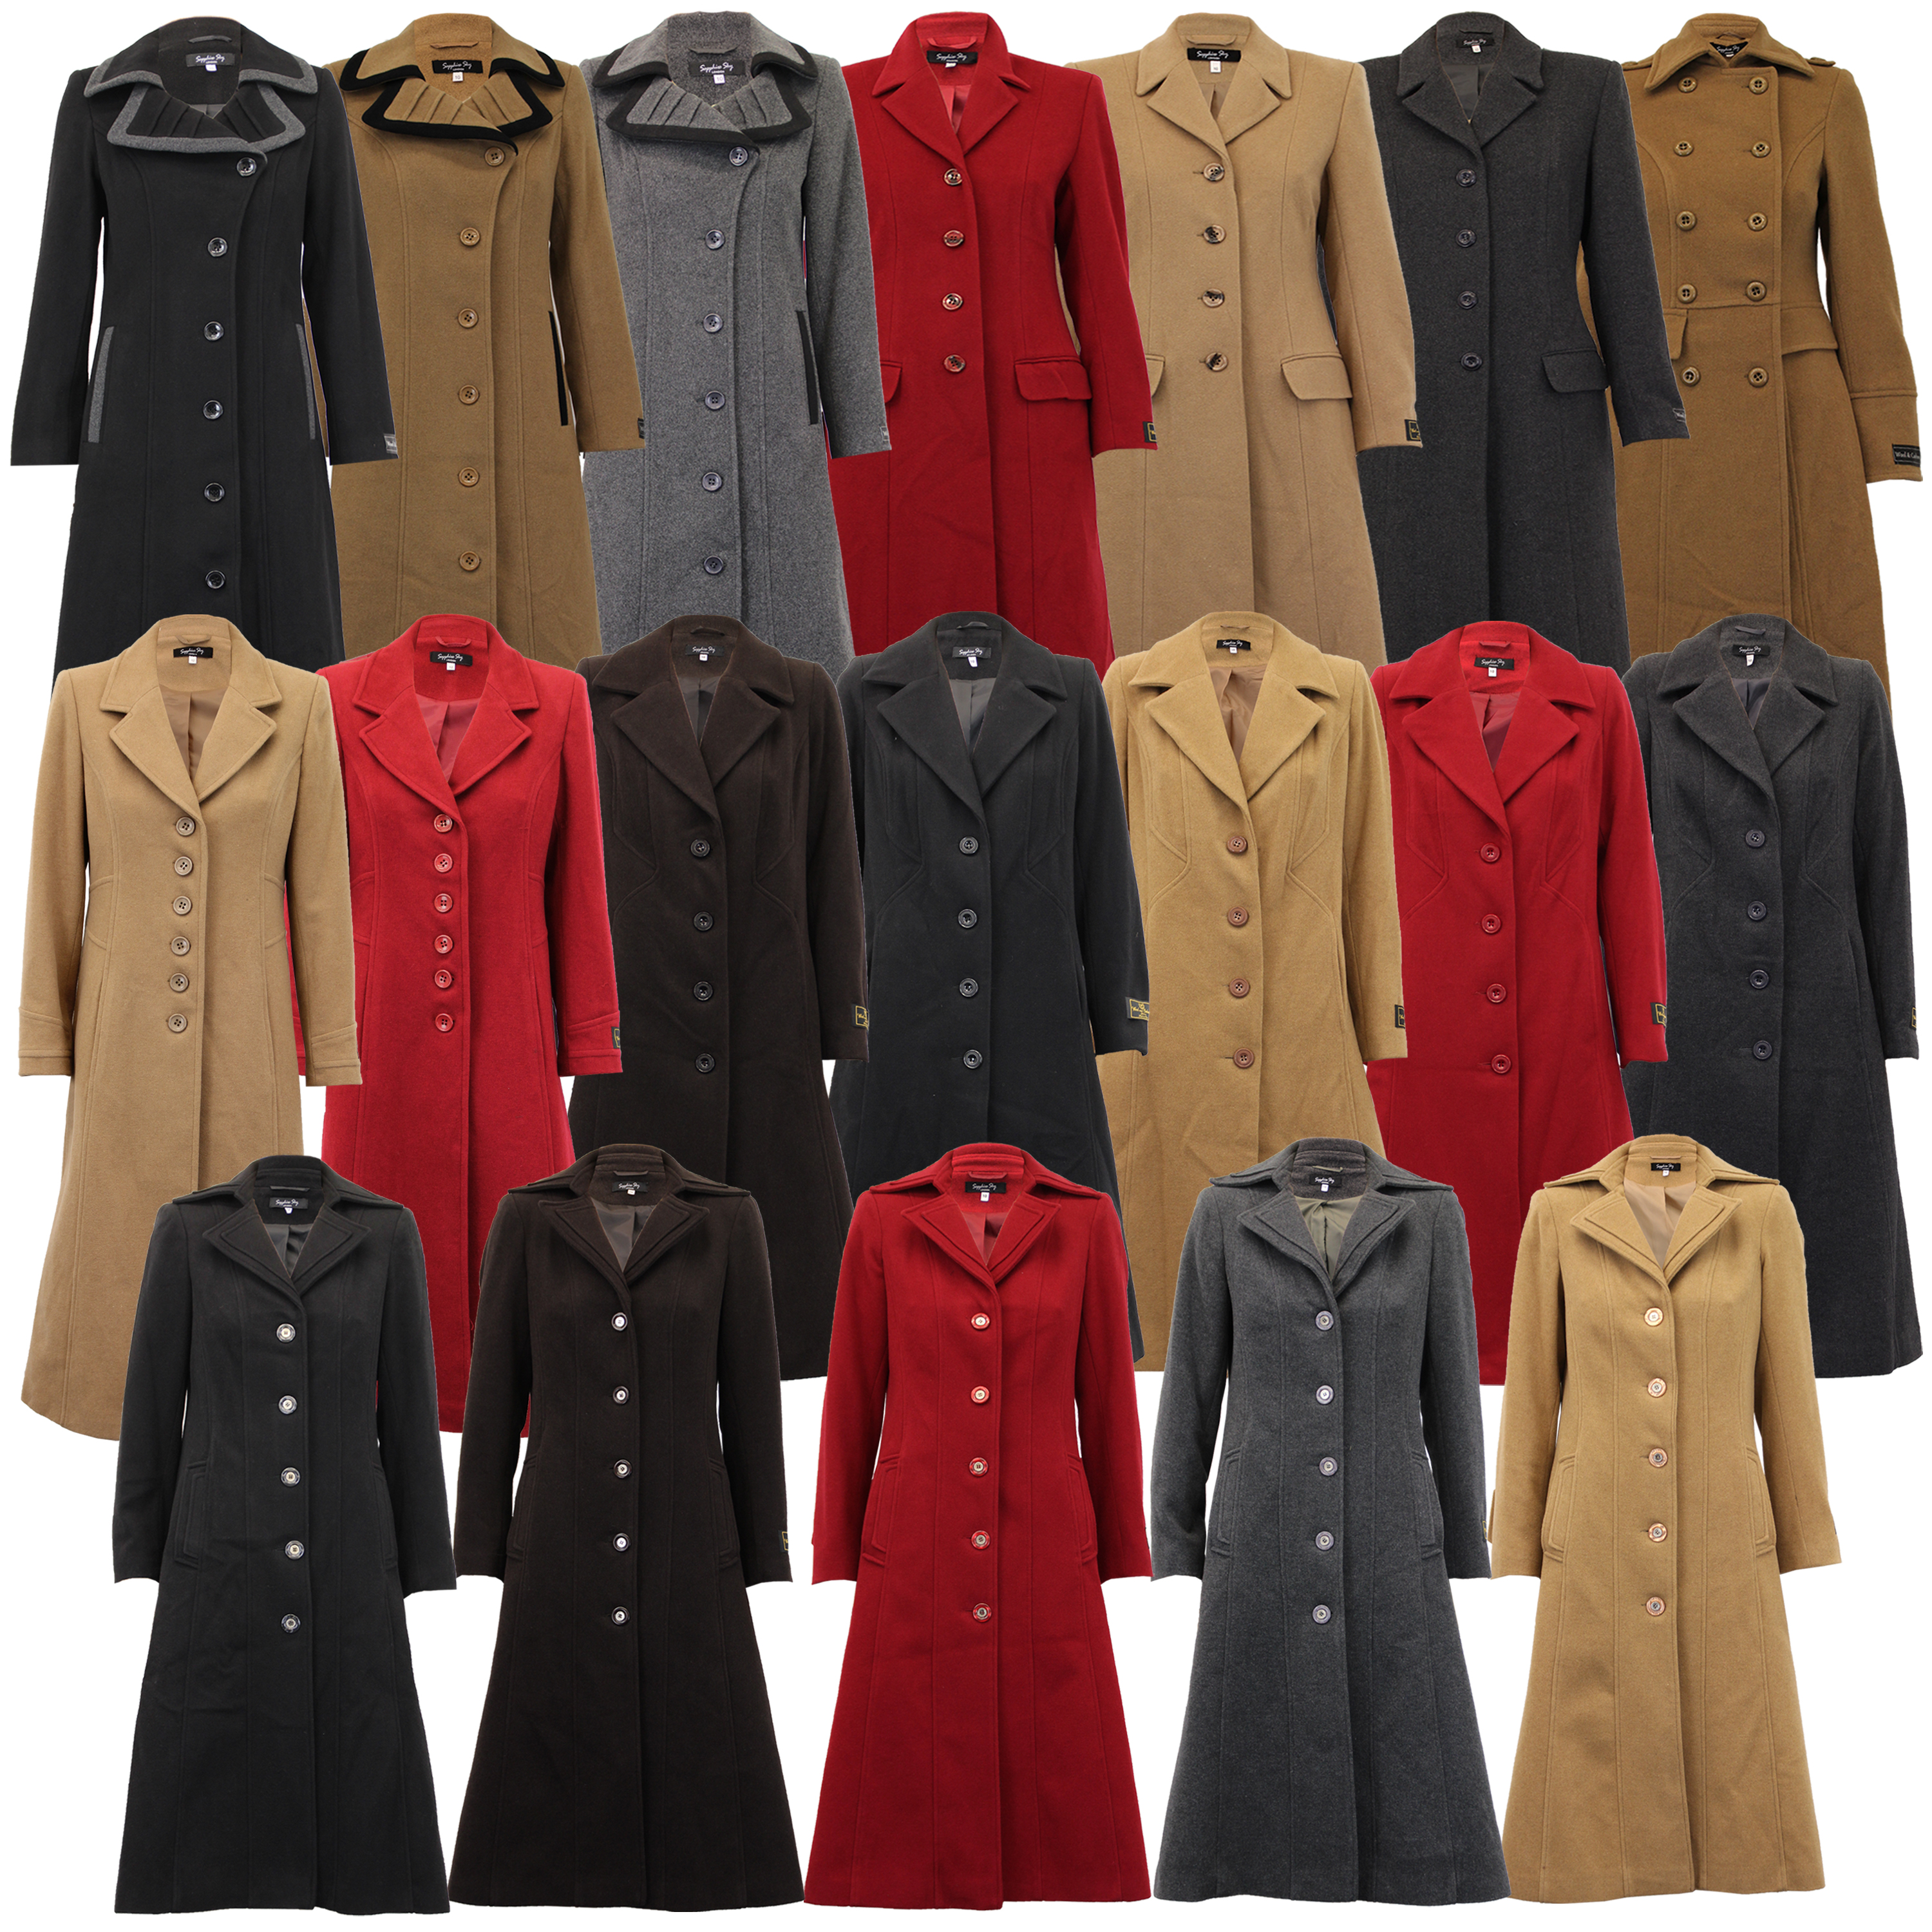 enjoy bottom price 2019 original rock-bottom price Details about Ladies Wool Cashmere Coat Women Jacket Outerwear Trench  Overcoat Winter Lined